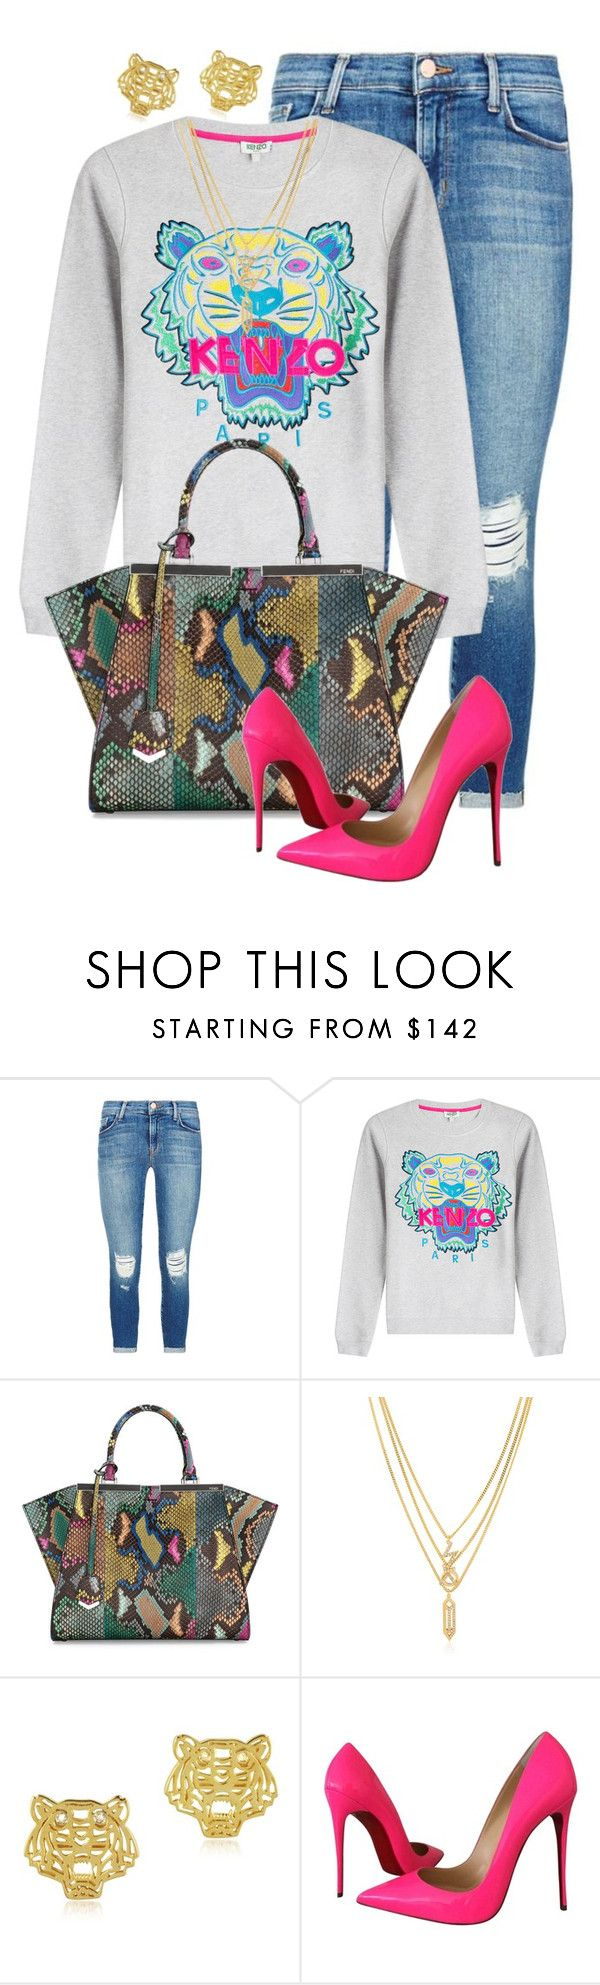 """Kenzo Killa"" by styleswavington ❤ liked on Polyvore featuring J Brand, Kenzo, Fendi, Christian Louboutin, women's clothing, women, female, woman, misses and juniors"